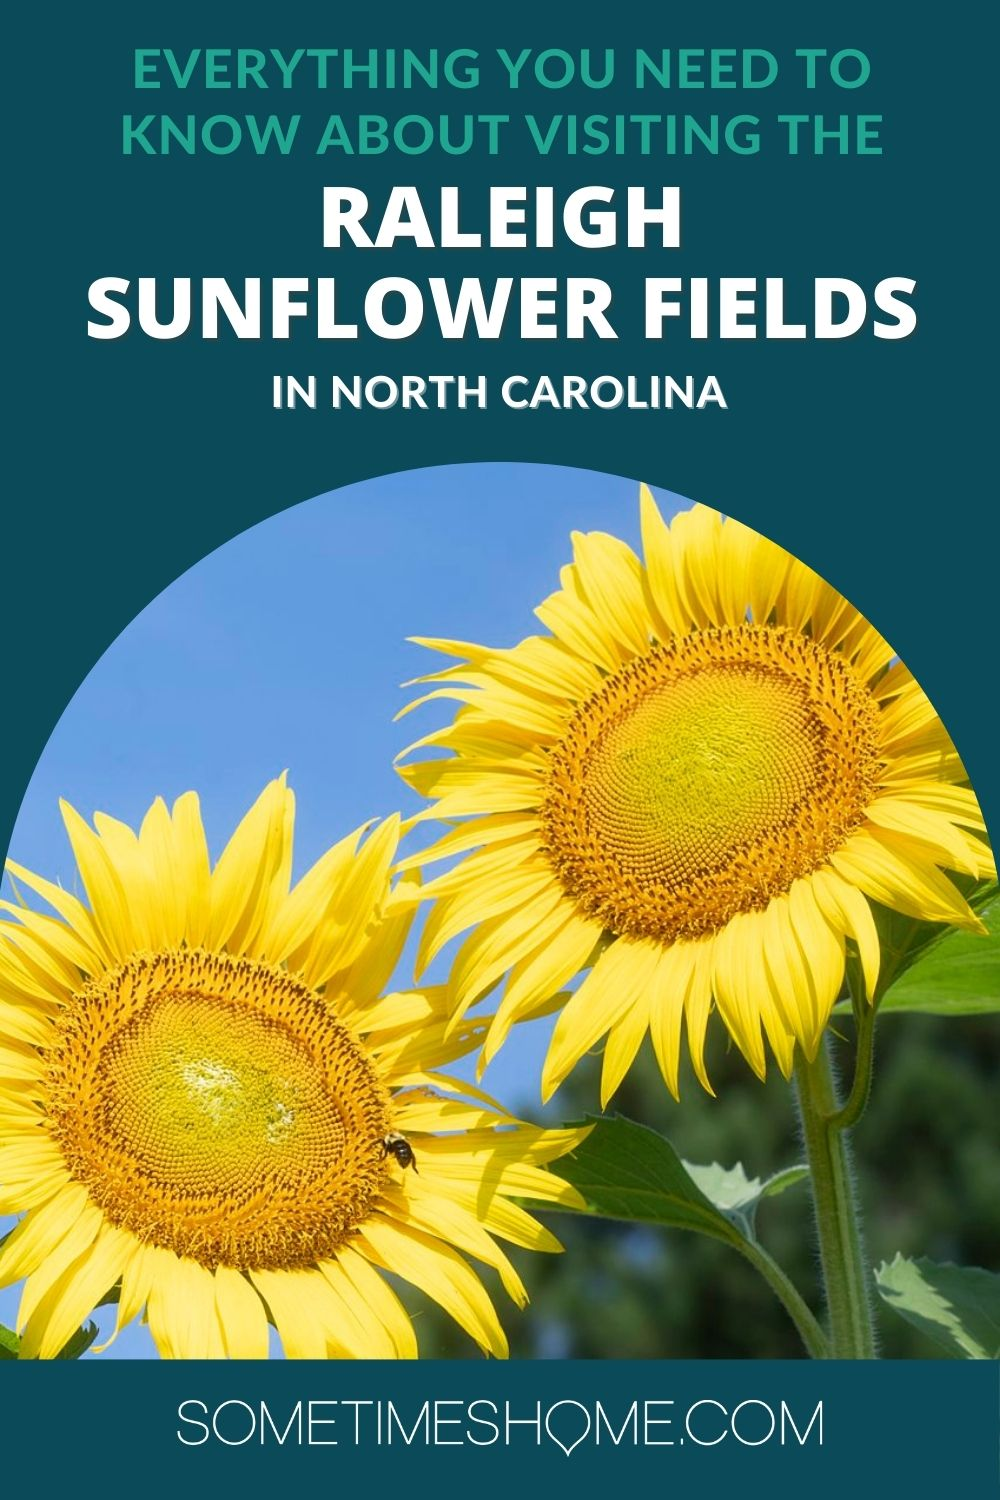 Everything you Need to know about the Raleigh Sunflower Fields with a picture of two yellow sunflowers.